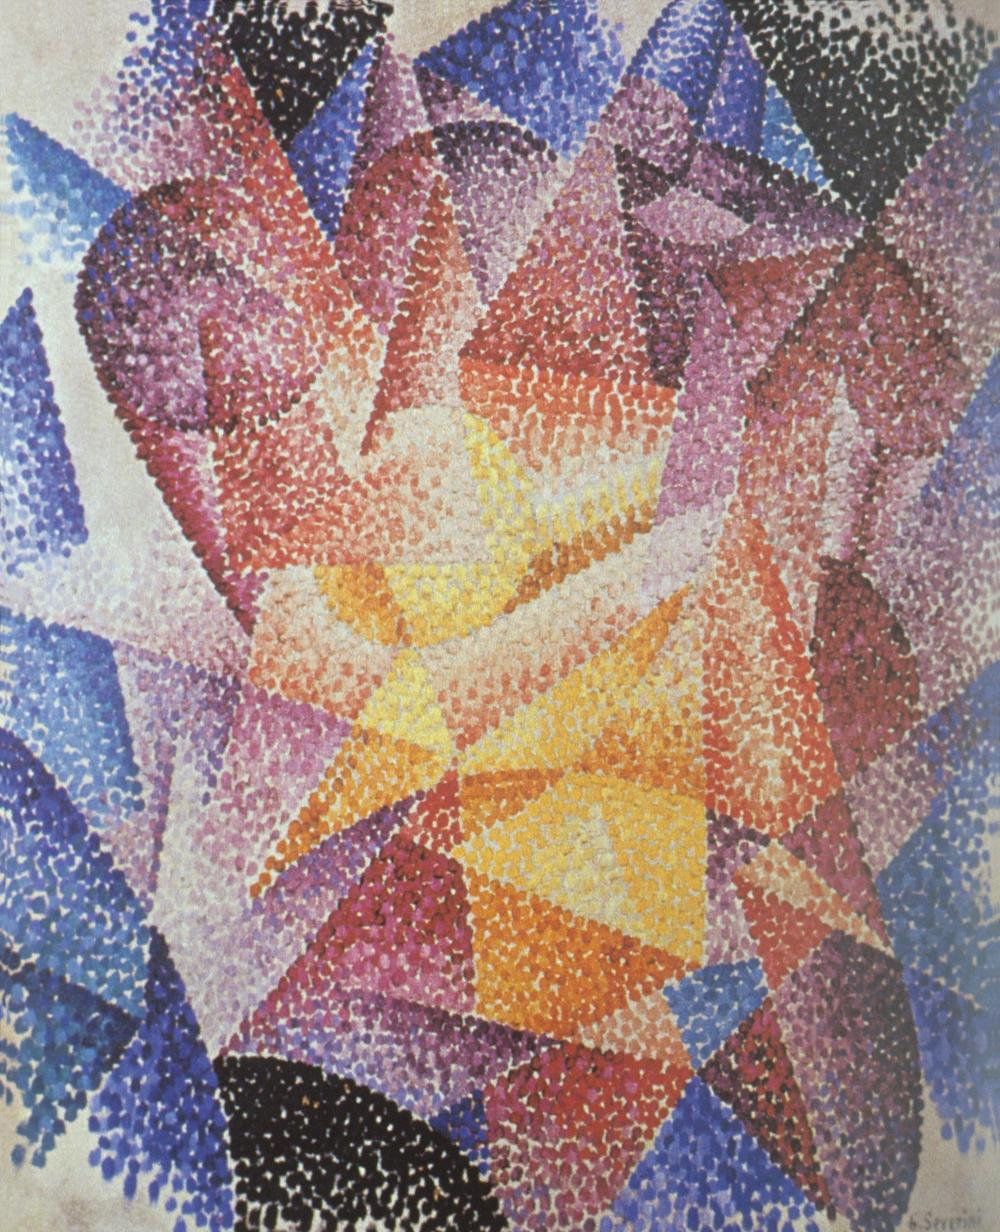 Gino Severini  Spherical Expansion of Light (Centrifugal) , 1914 Oil on canvas 24 3/8 x 19 3/4 inches